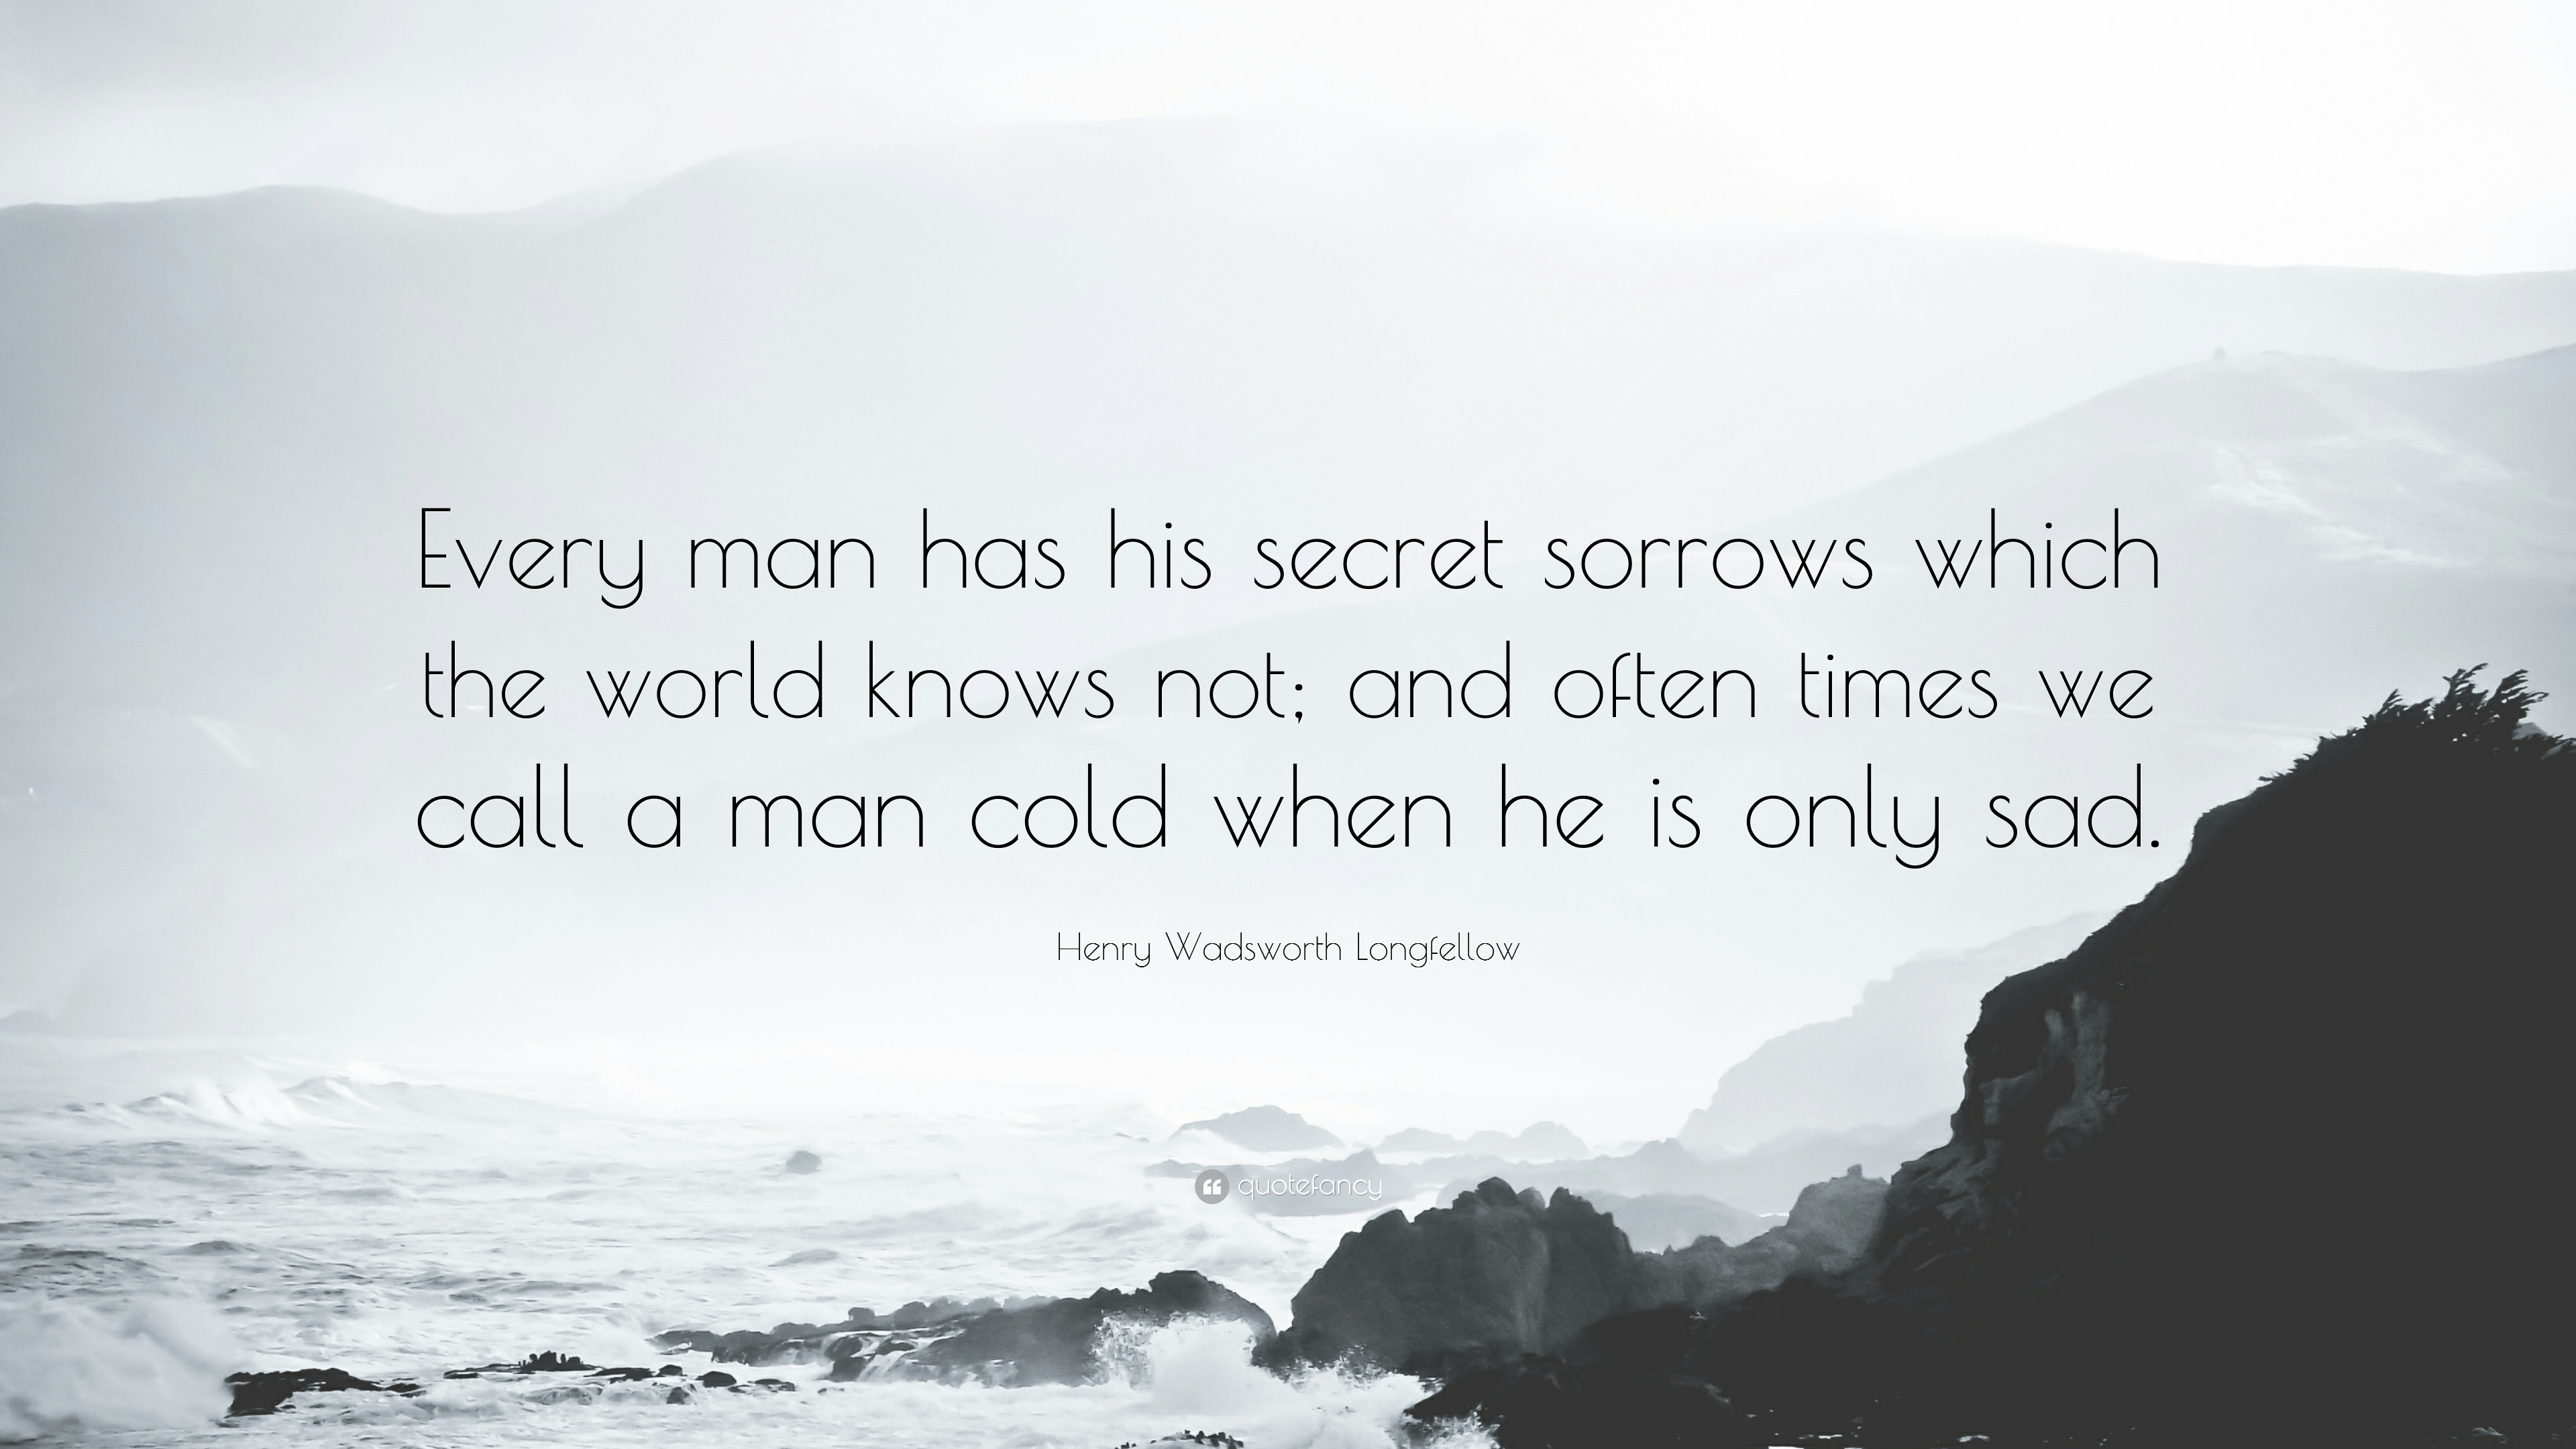 Superior Henry Wadsworth Longfellow Quote: U201cEvery Man Has His Secret Sorrows Which  The World Knows